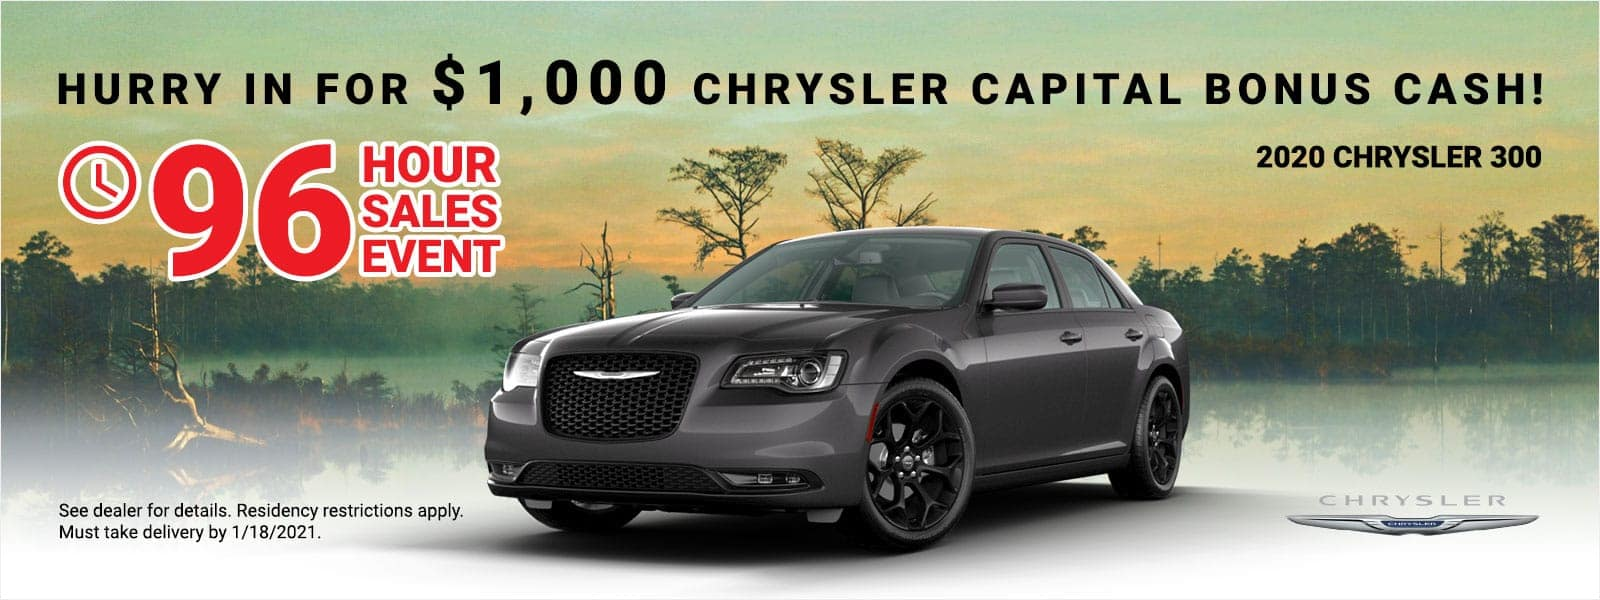 SEBC-2020-Chrysler-300